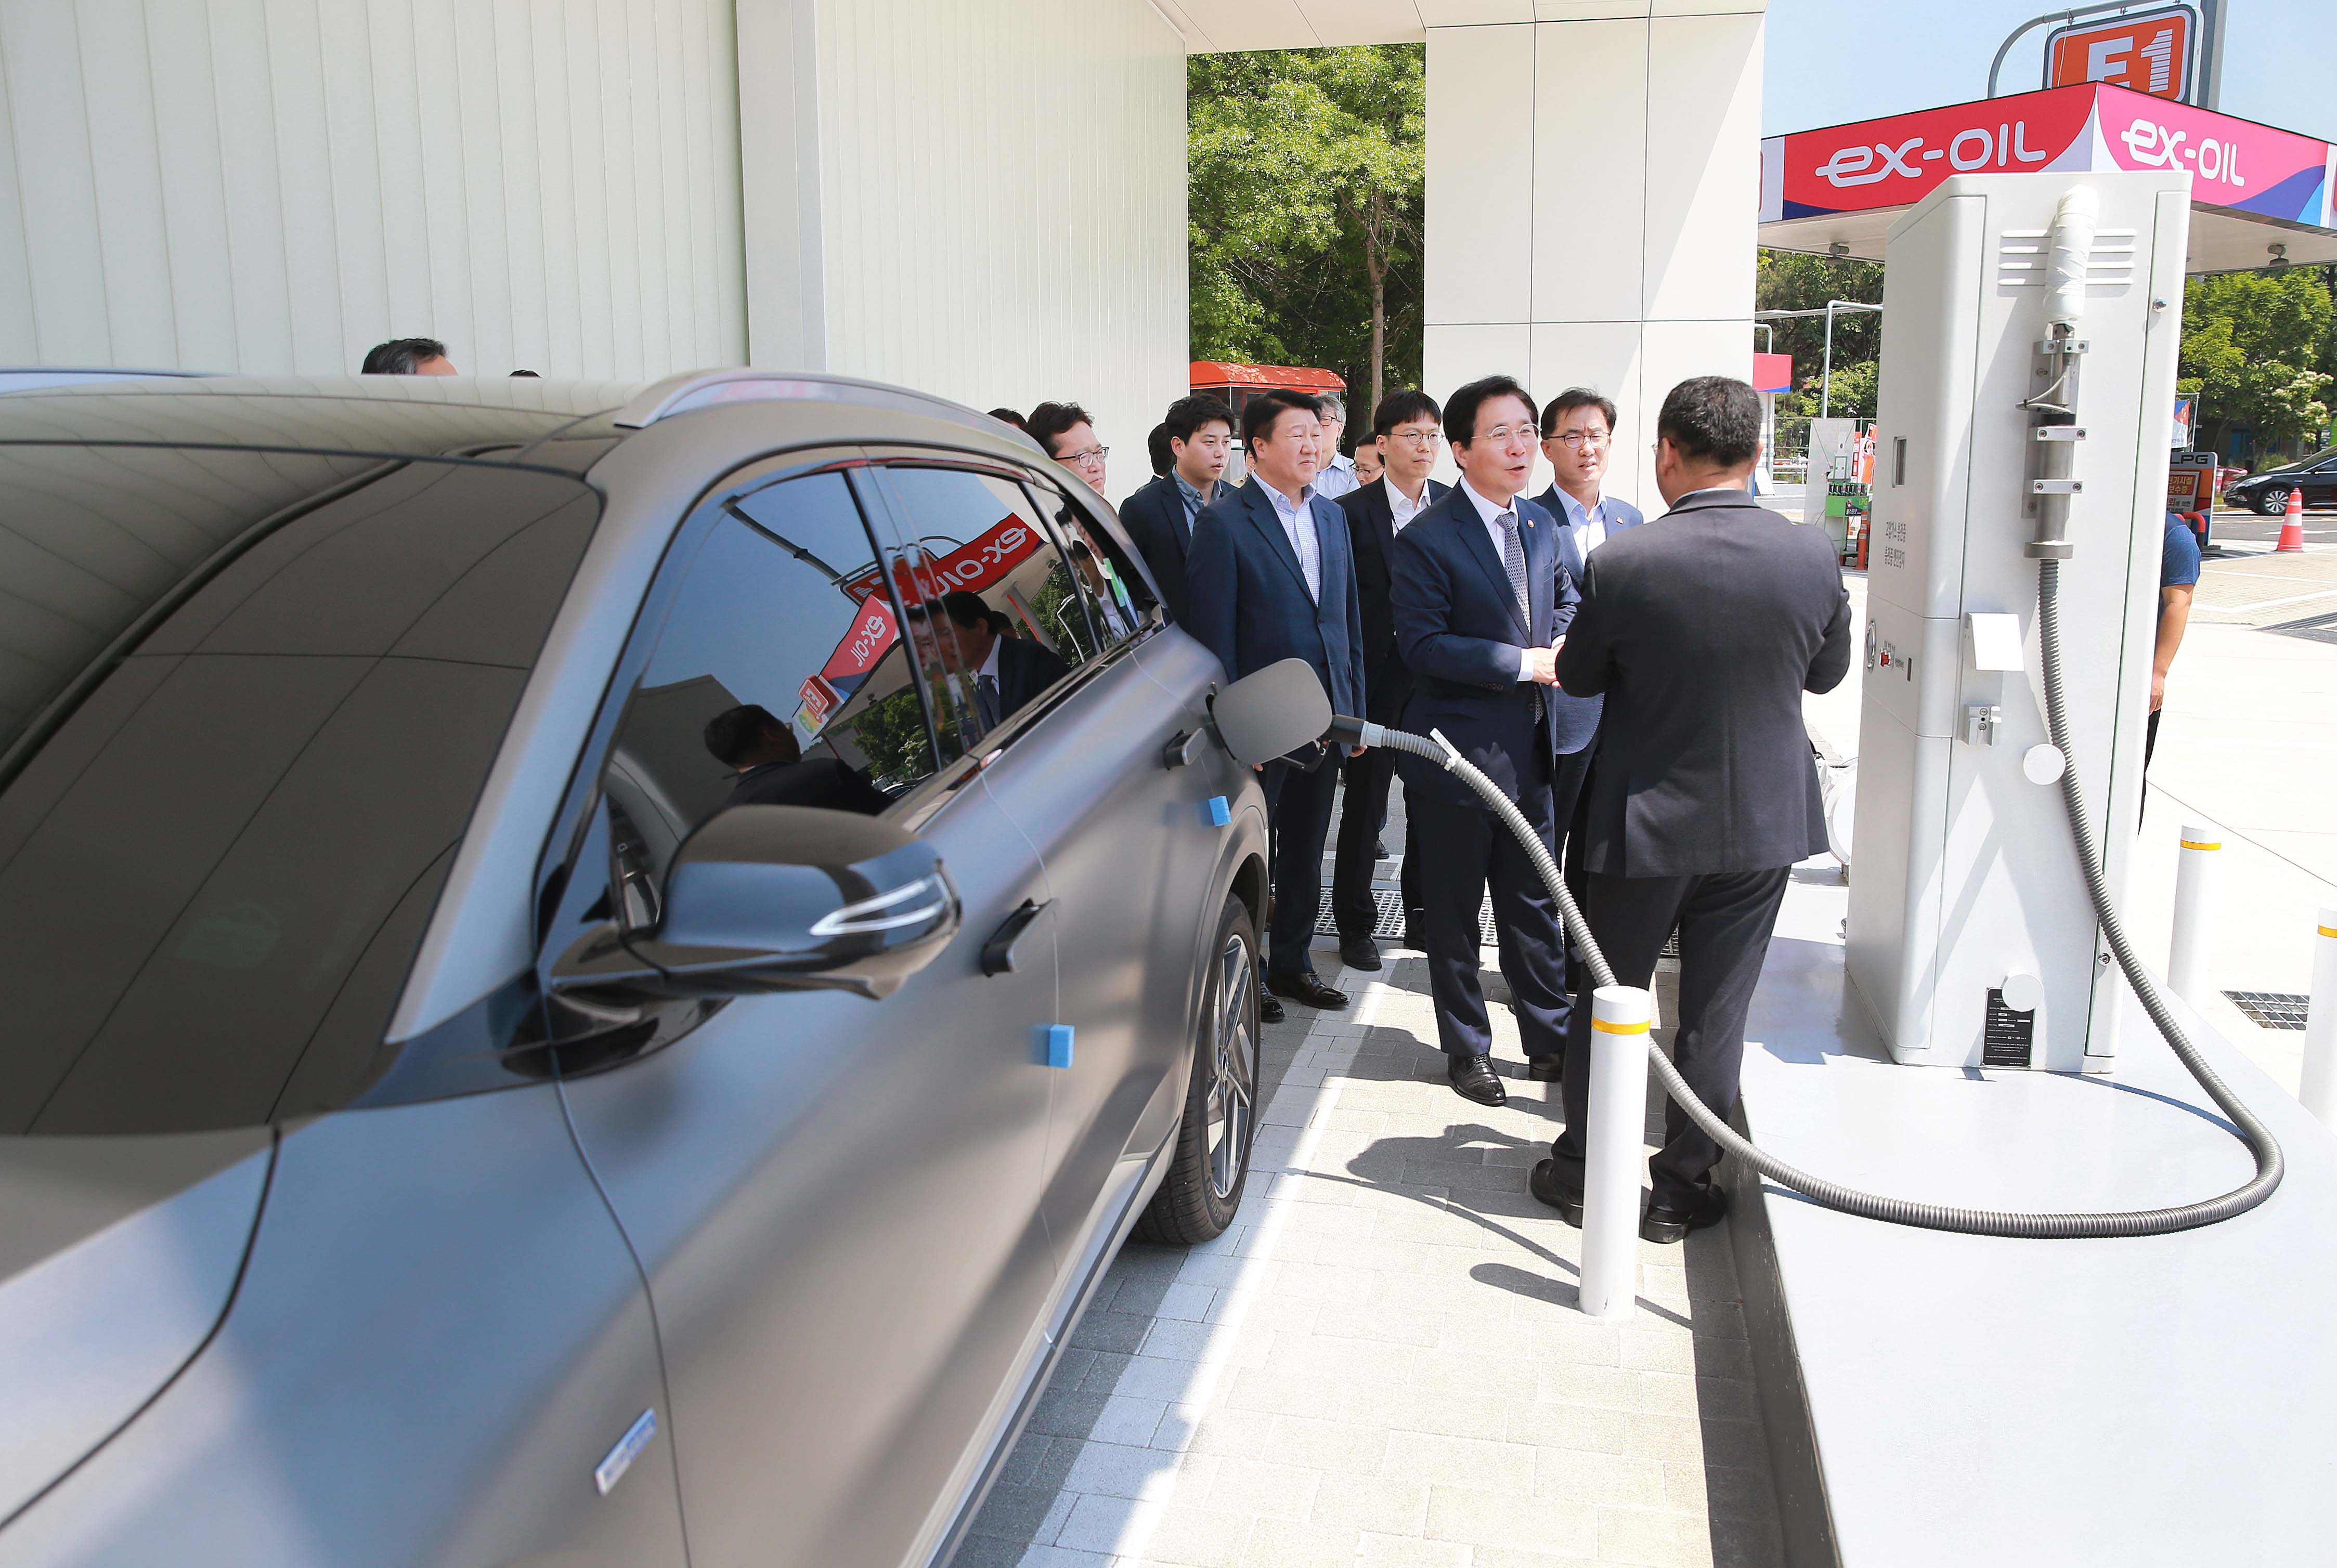 Minister Sung visits hydrogen fueling station in Anseong